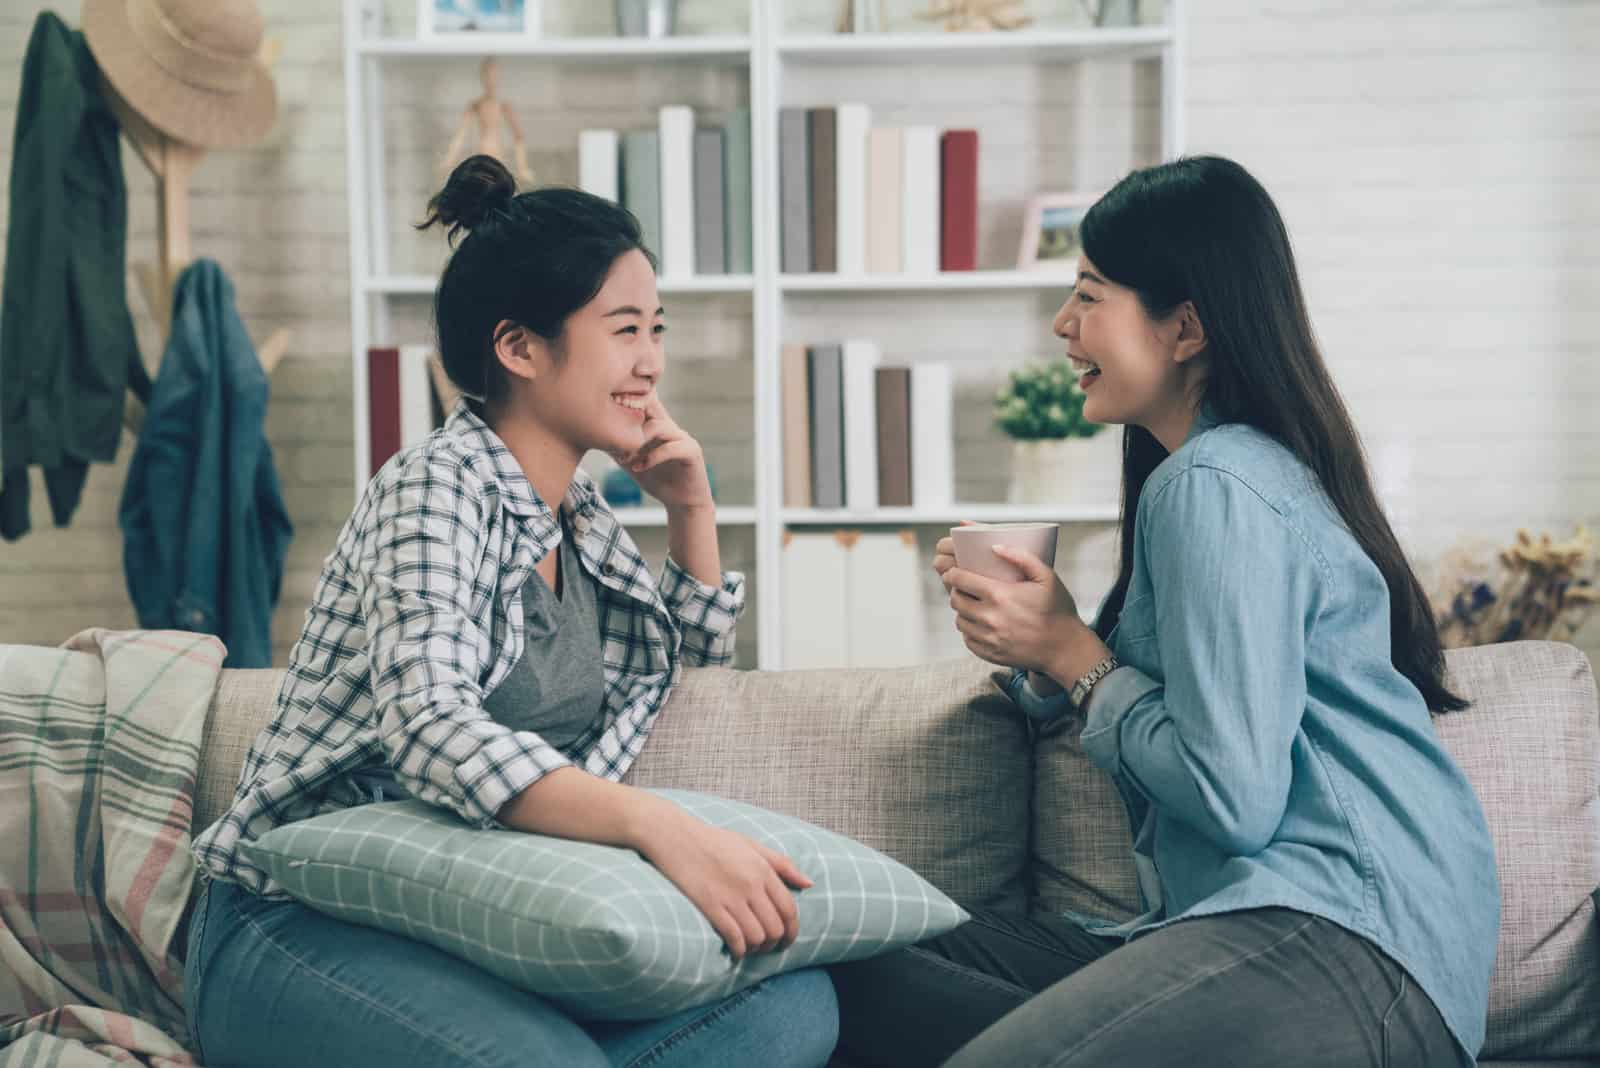 two girls sit on the sofa and talk